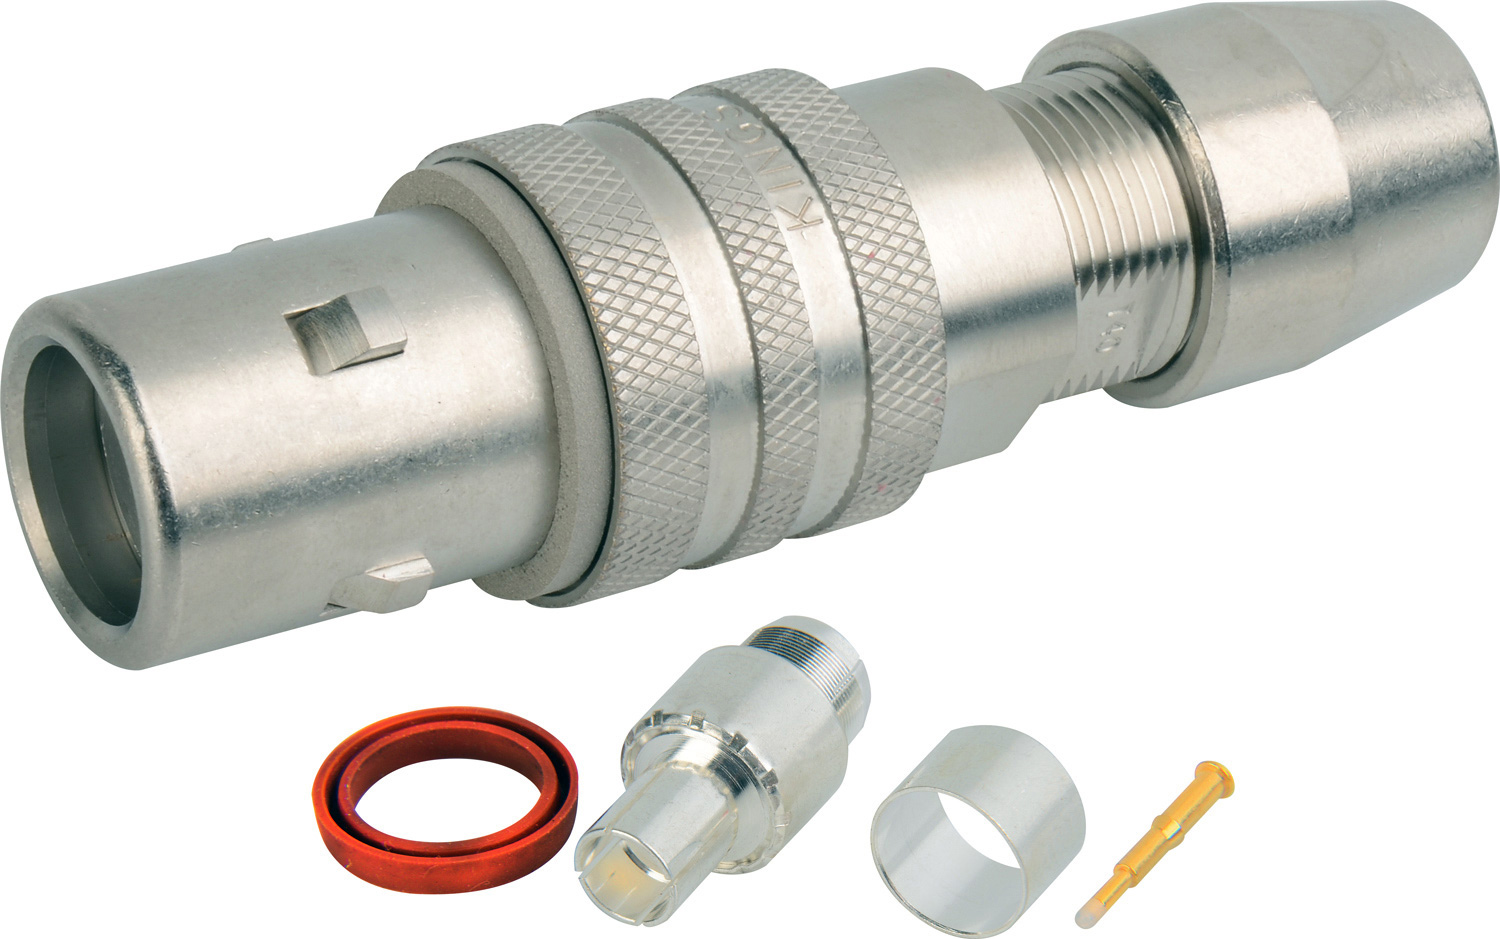 Kings Tri-Loc Female Cable End for Belden 9232 KC-77033